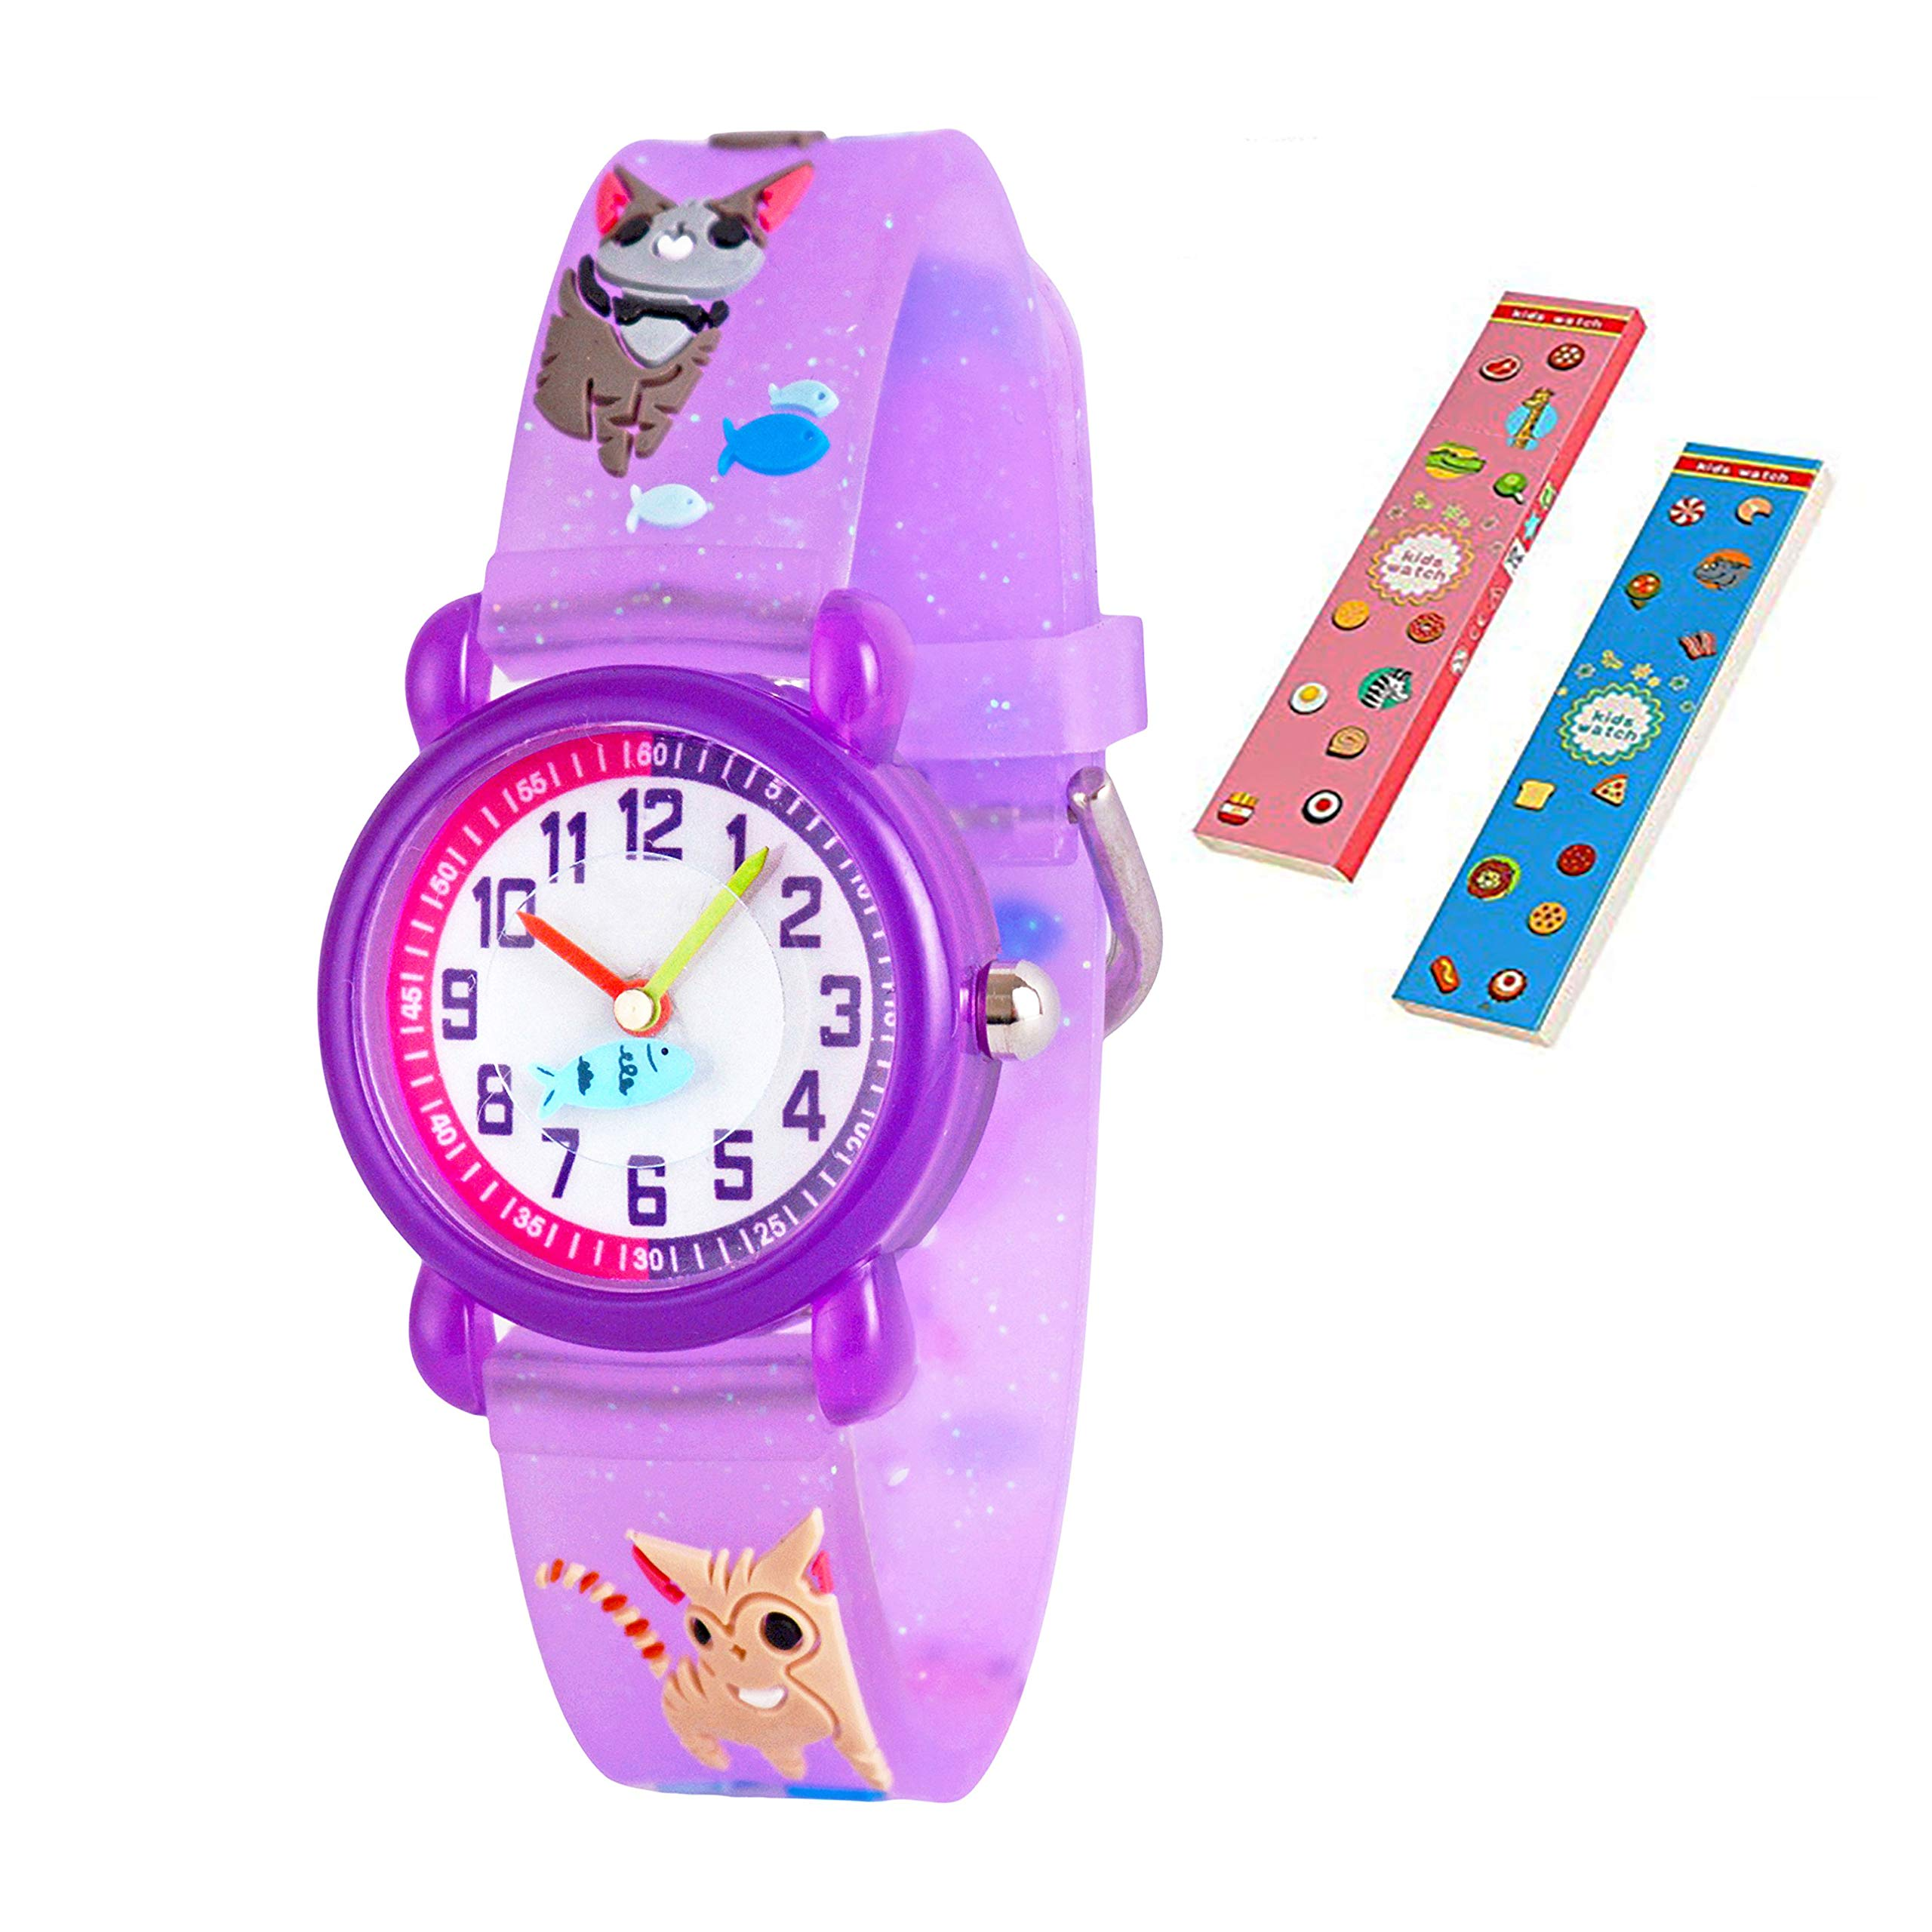 Toddler Kids Children Watch,3D Cute Cartoon Silicone Band Wristwatches Time Teacher Gifts Watches for Kids Girls Toddlers (Purple Cat) by Angels' (Image #1)